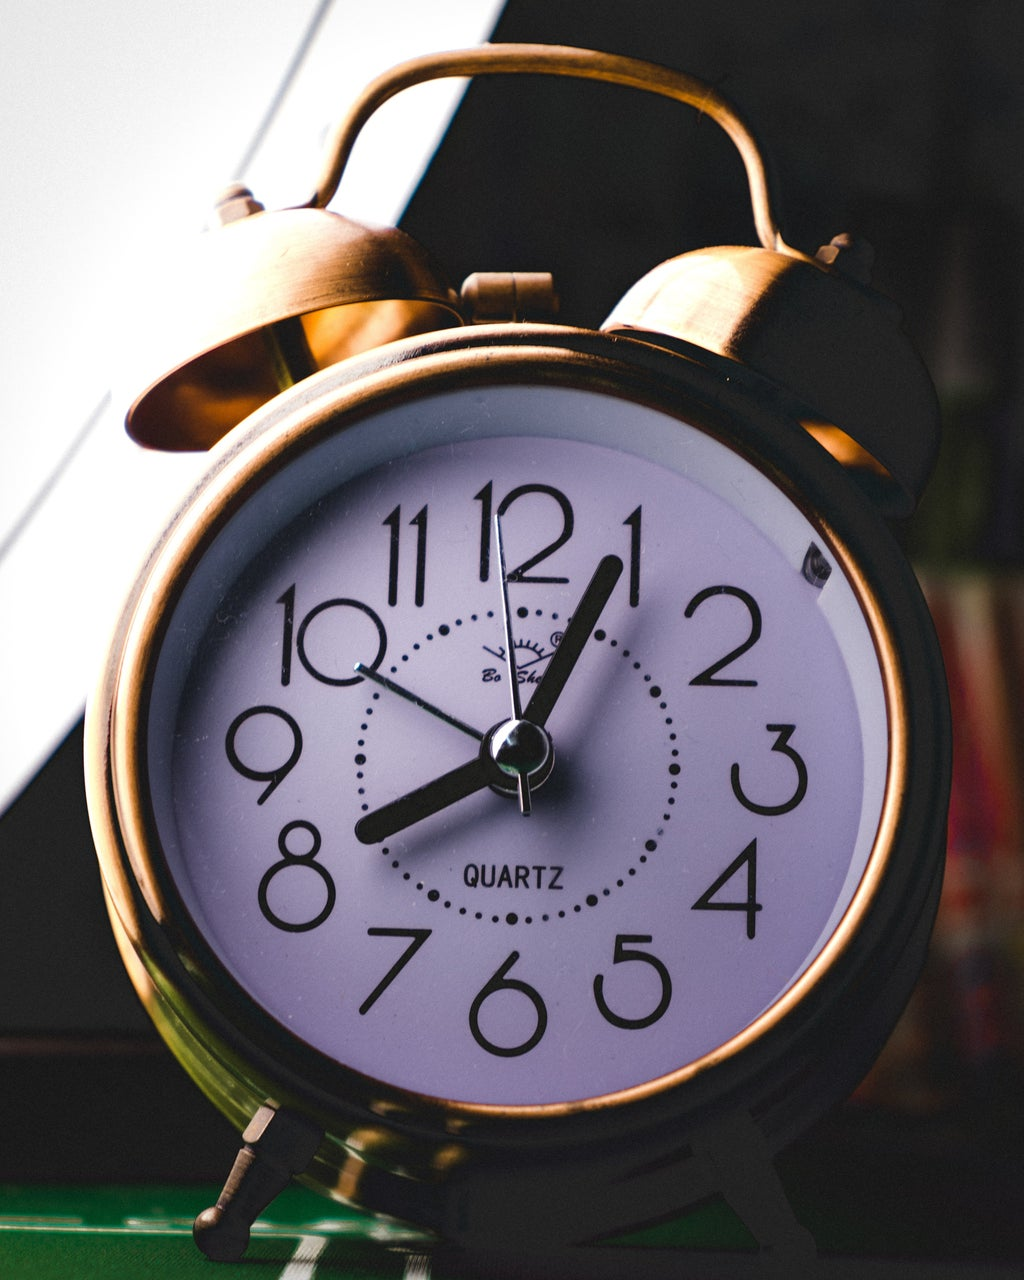 silver twin bell alarm clock at 8:05